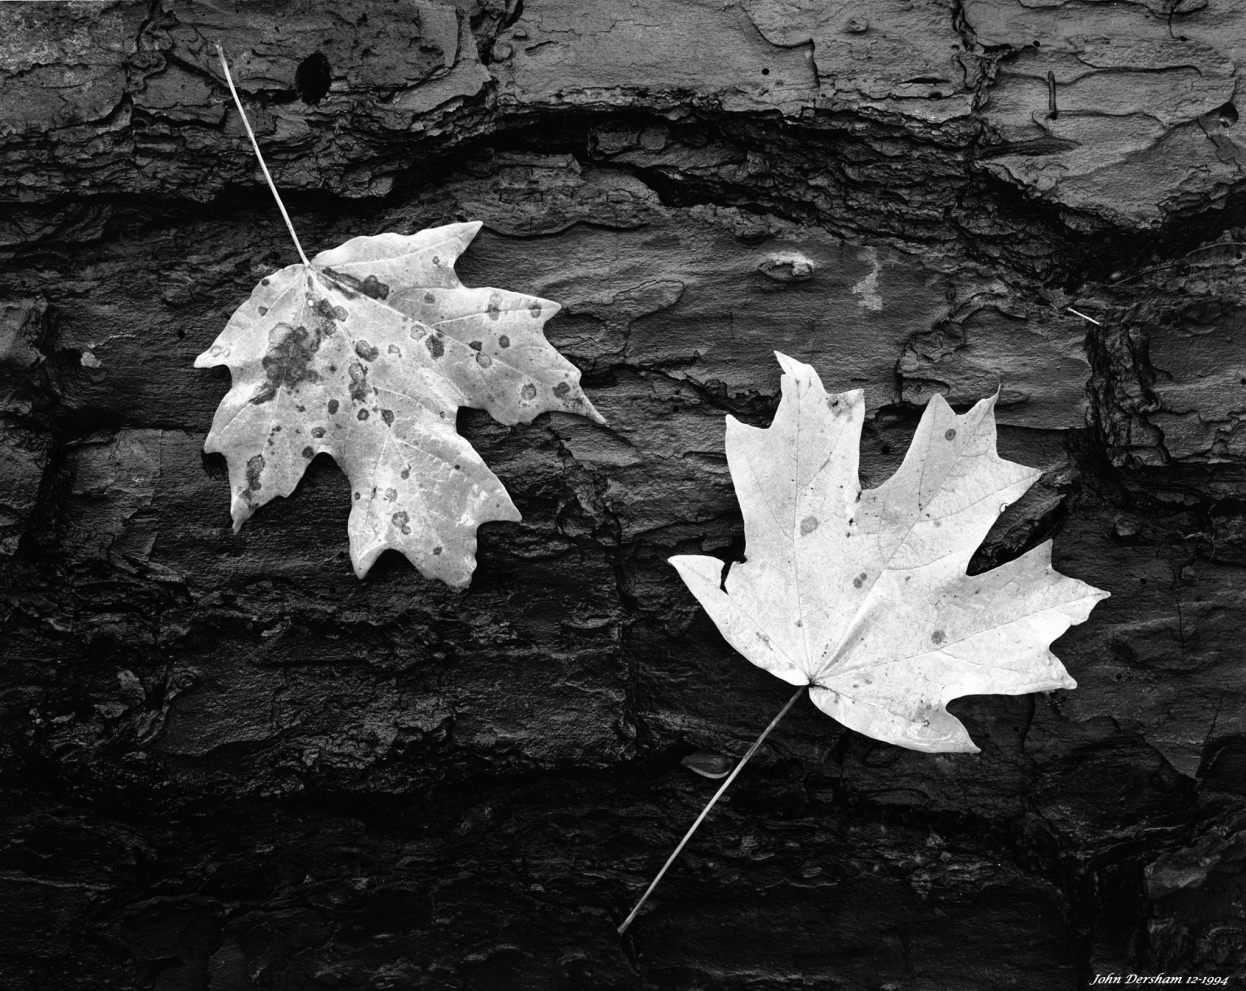 12-27-1994 Maple leaves-Linhof Technika V 4x5 camera-120mm Schneider Super Symmar HM lens-Ilford Delta 400 4x5 film-PMK Pyro developer.